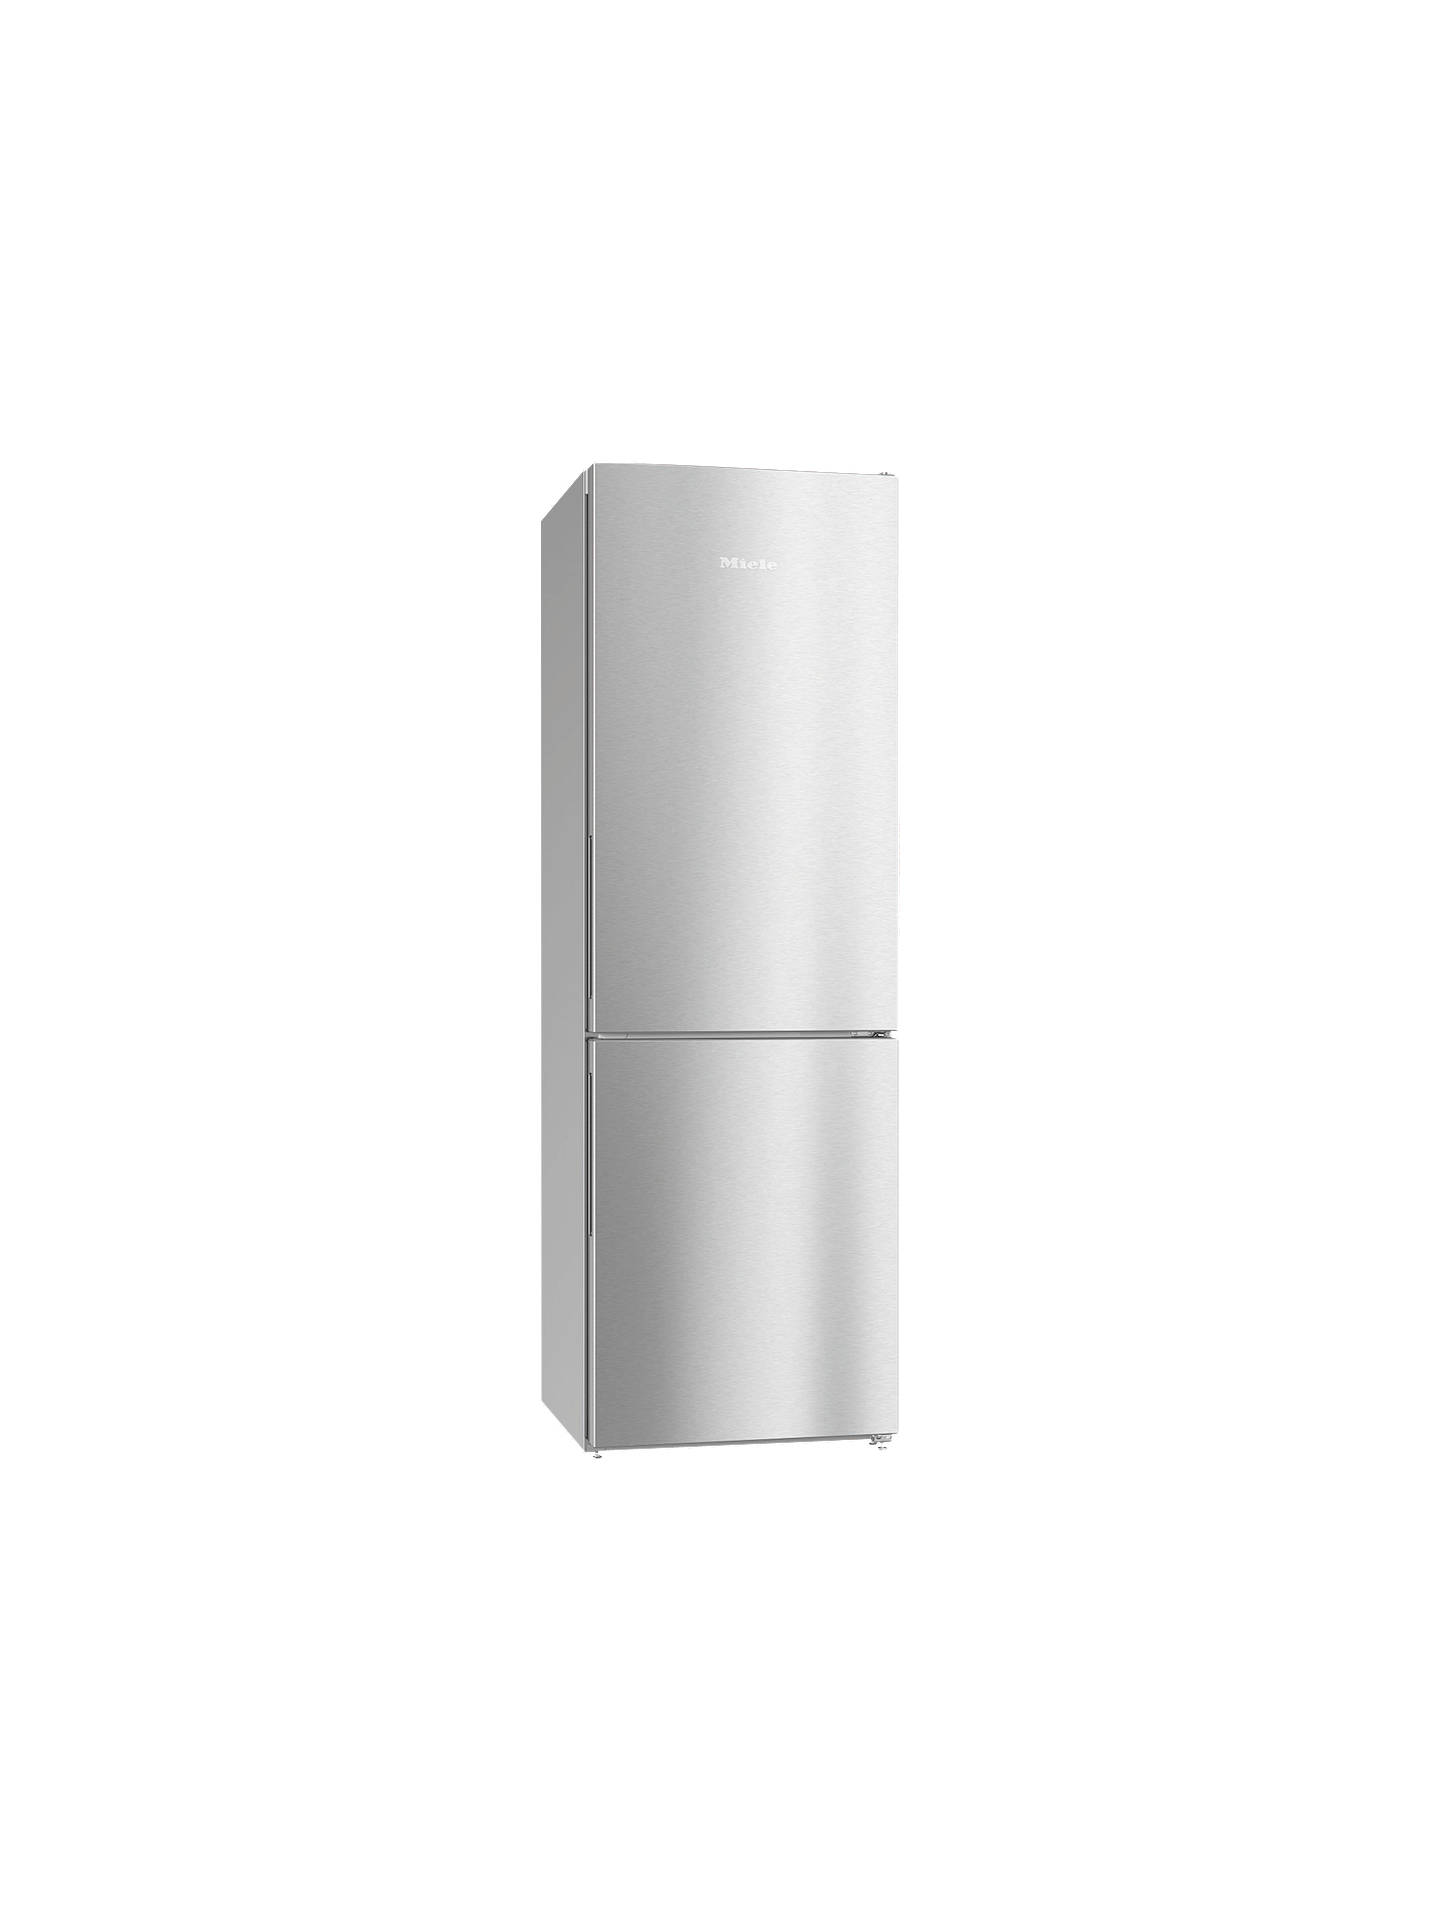 BuyMiele KFN28132D Freestanding Fridge Freezer, A++ Energy Rating, 60cm Wide, Clean Steel Online at johnlewis.com